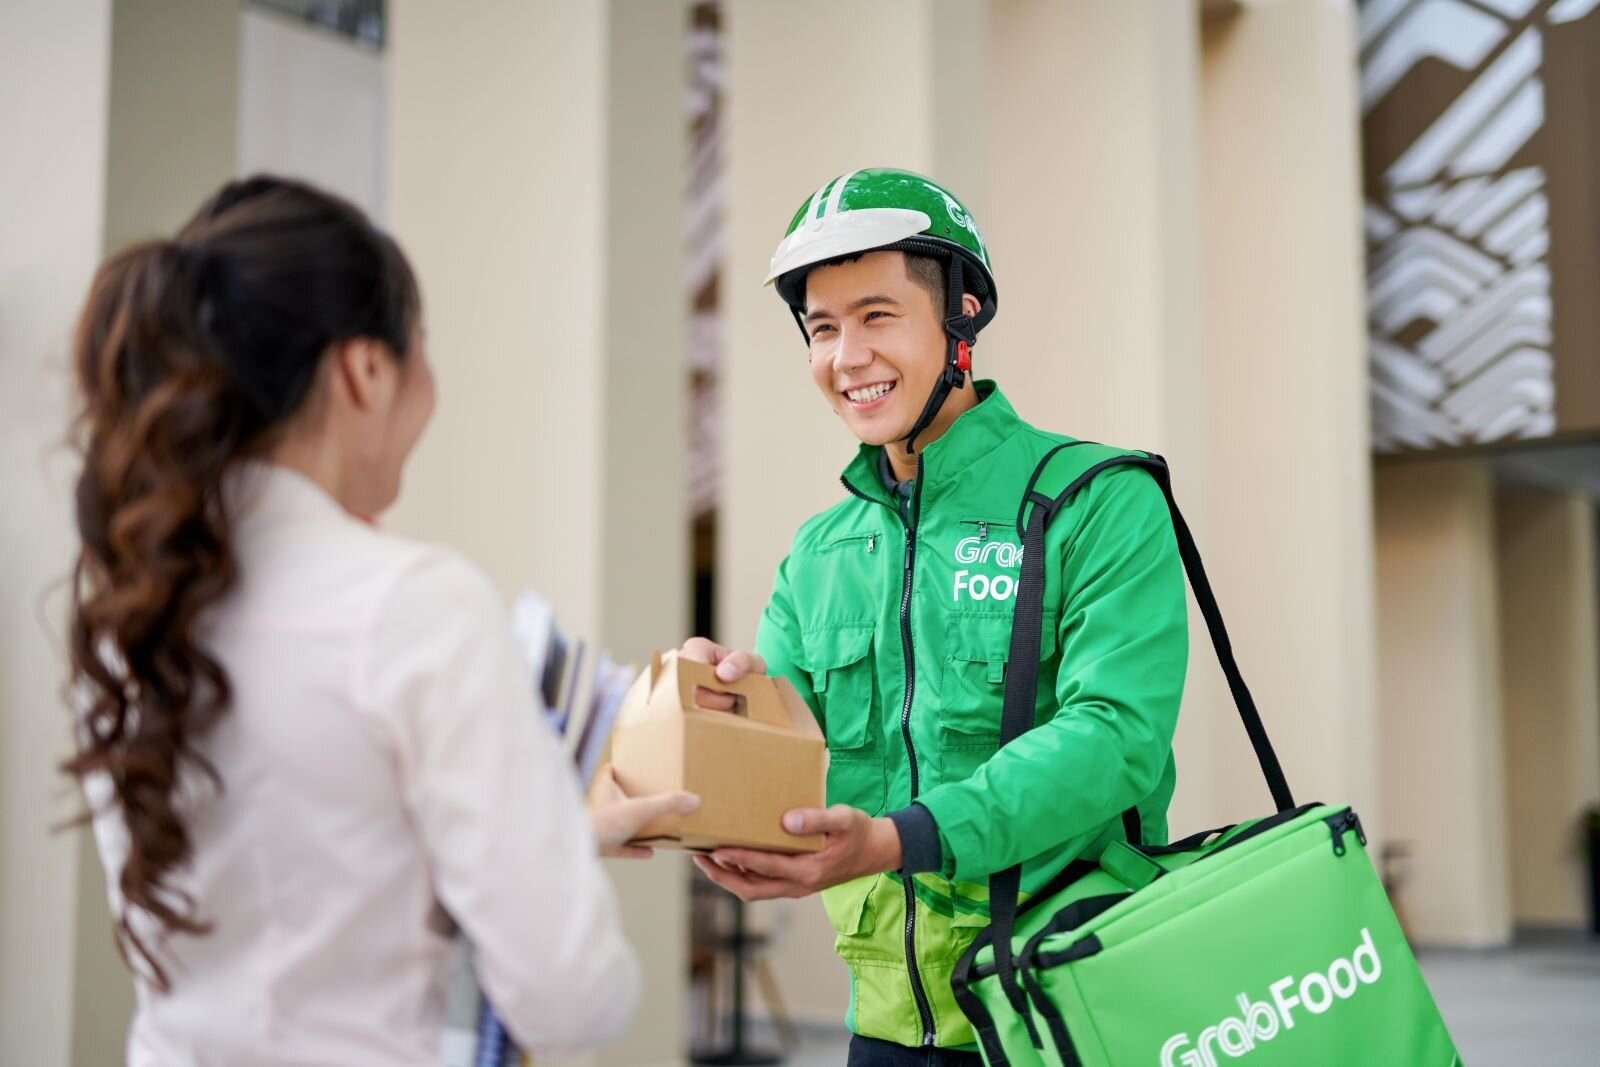 New Grab Foodie Pack Subscription at S$9.99 Per Month Coming Soon? Expect Monthly GrabFood Delivery Discount Vouchers! — The Shutterwhale